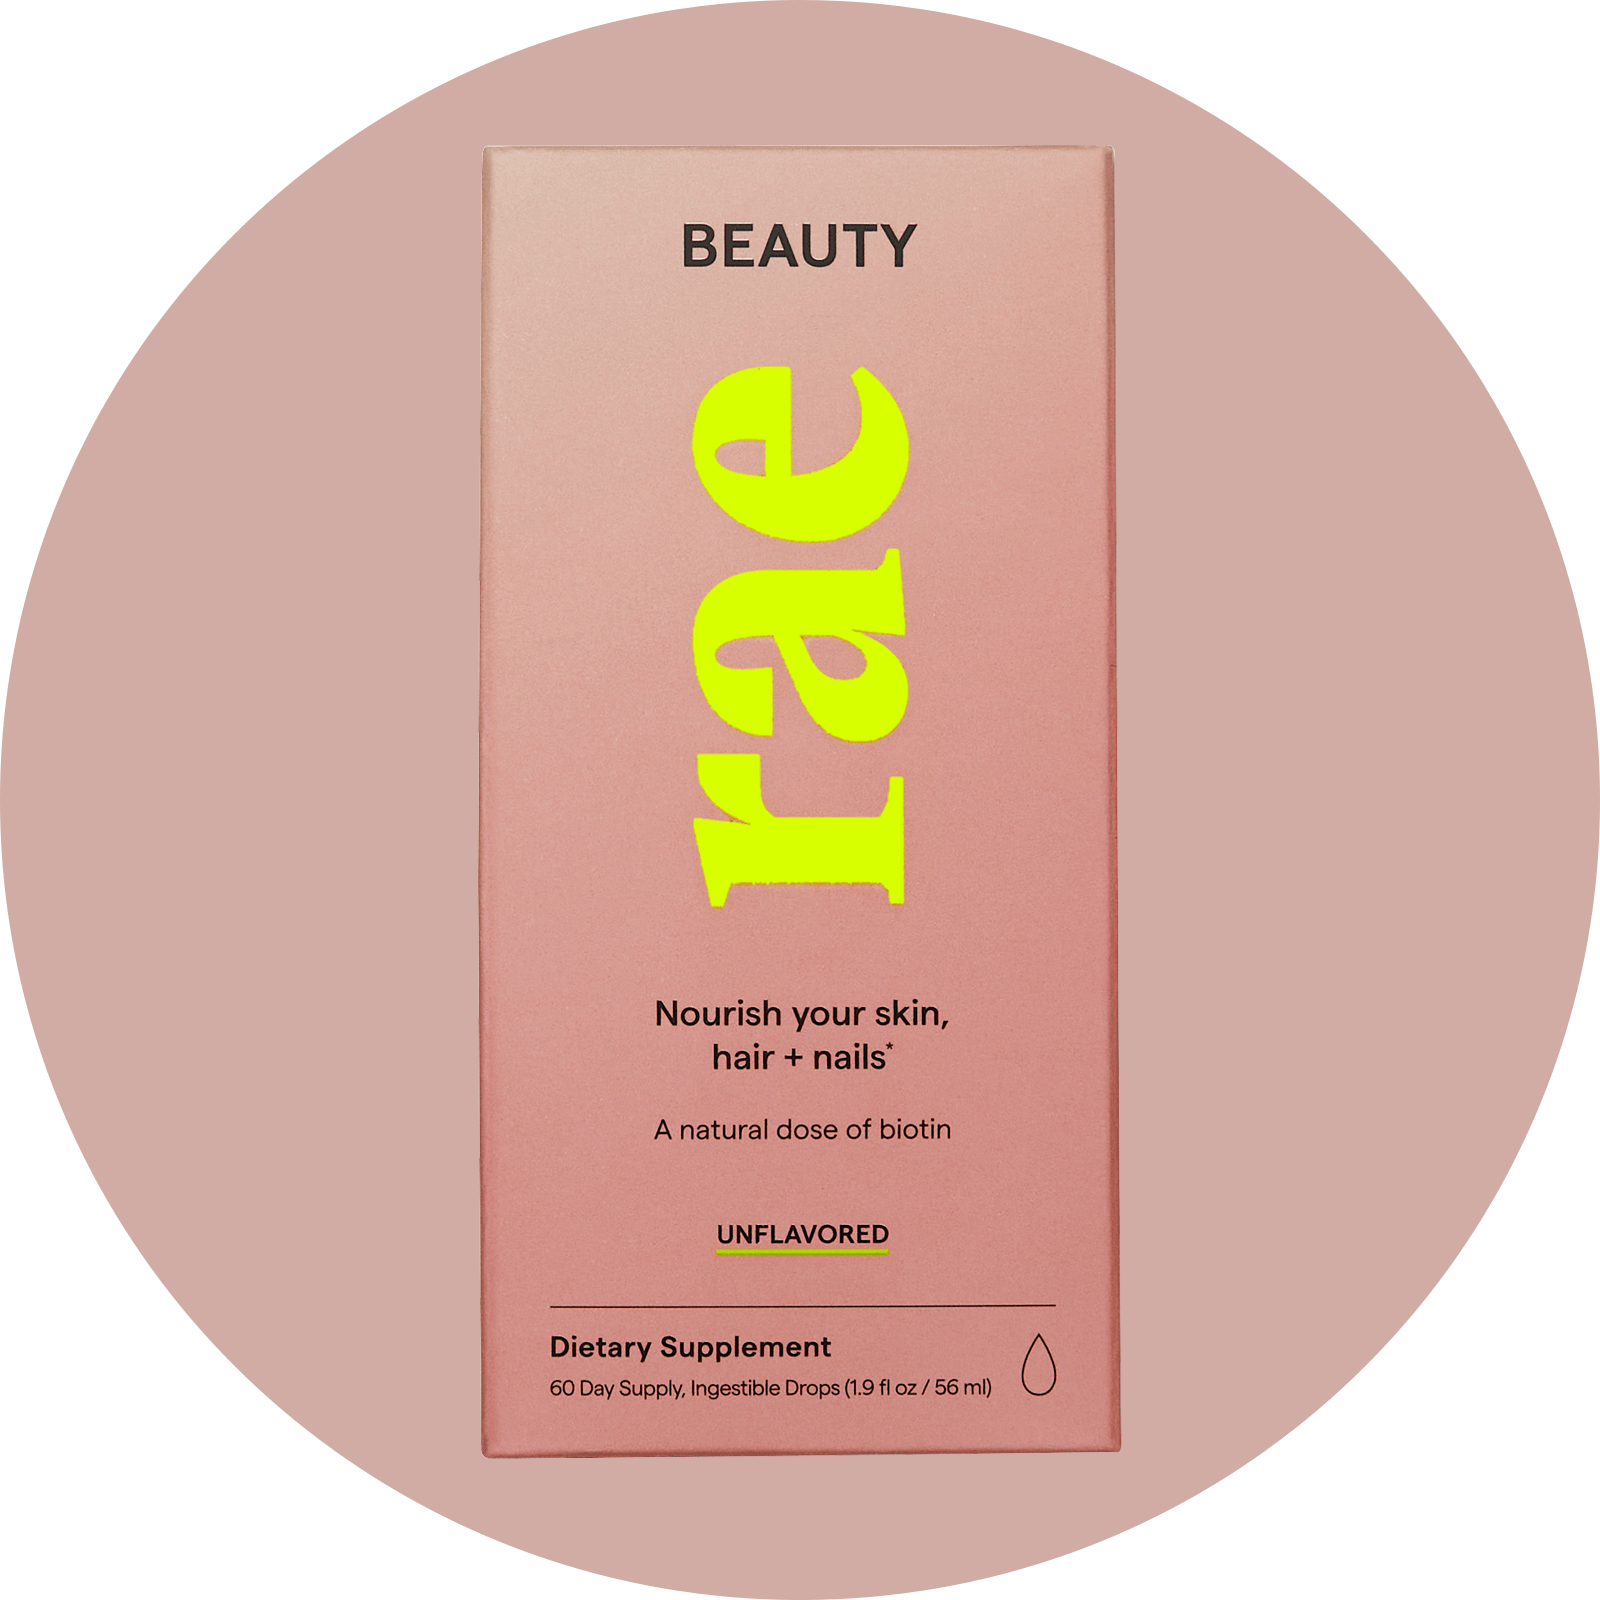 Beauty - Drops, Rae Wellness, Nourish Hair, Skin & Nails